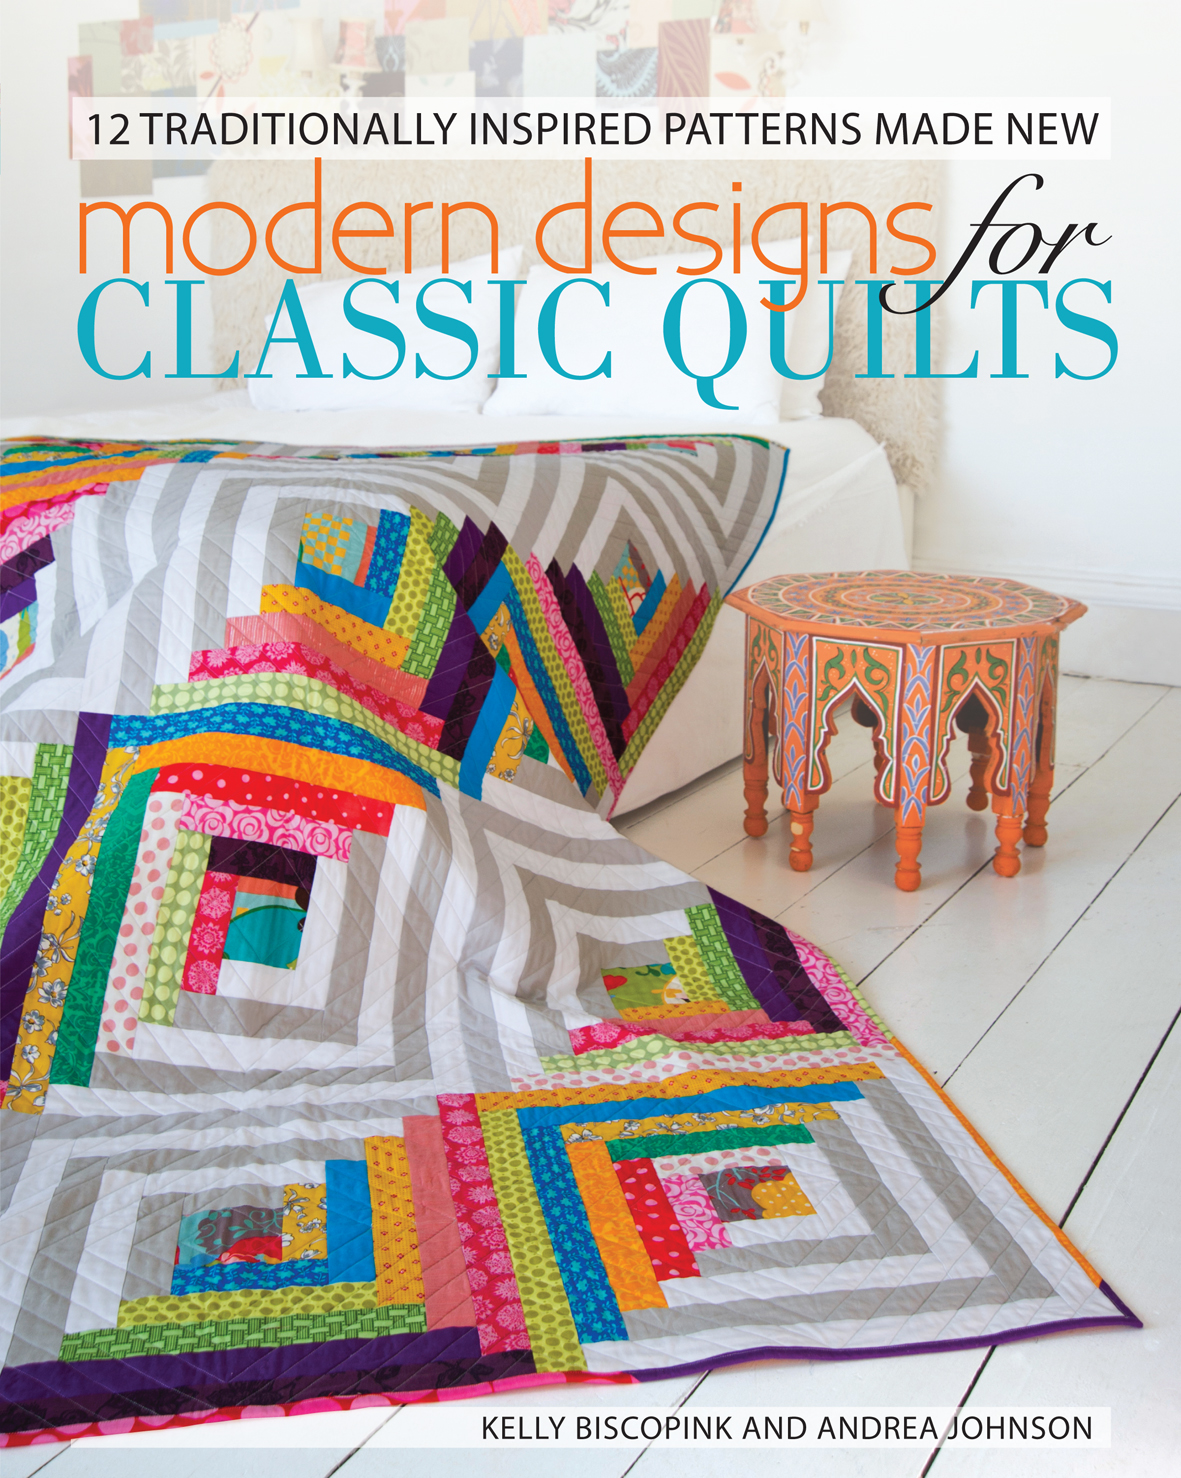 Lollyquiltz: Modern Designs for Classic Quilts-- Book Review and Give Away